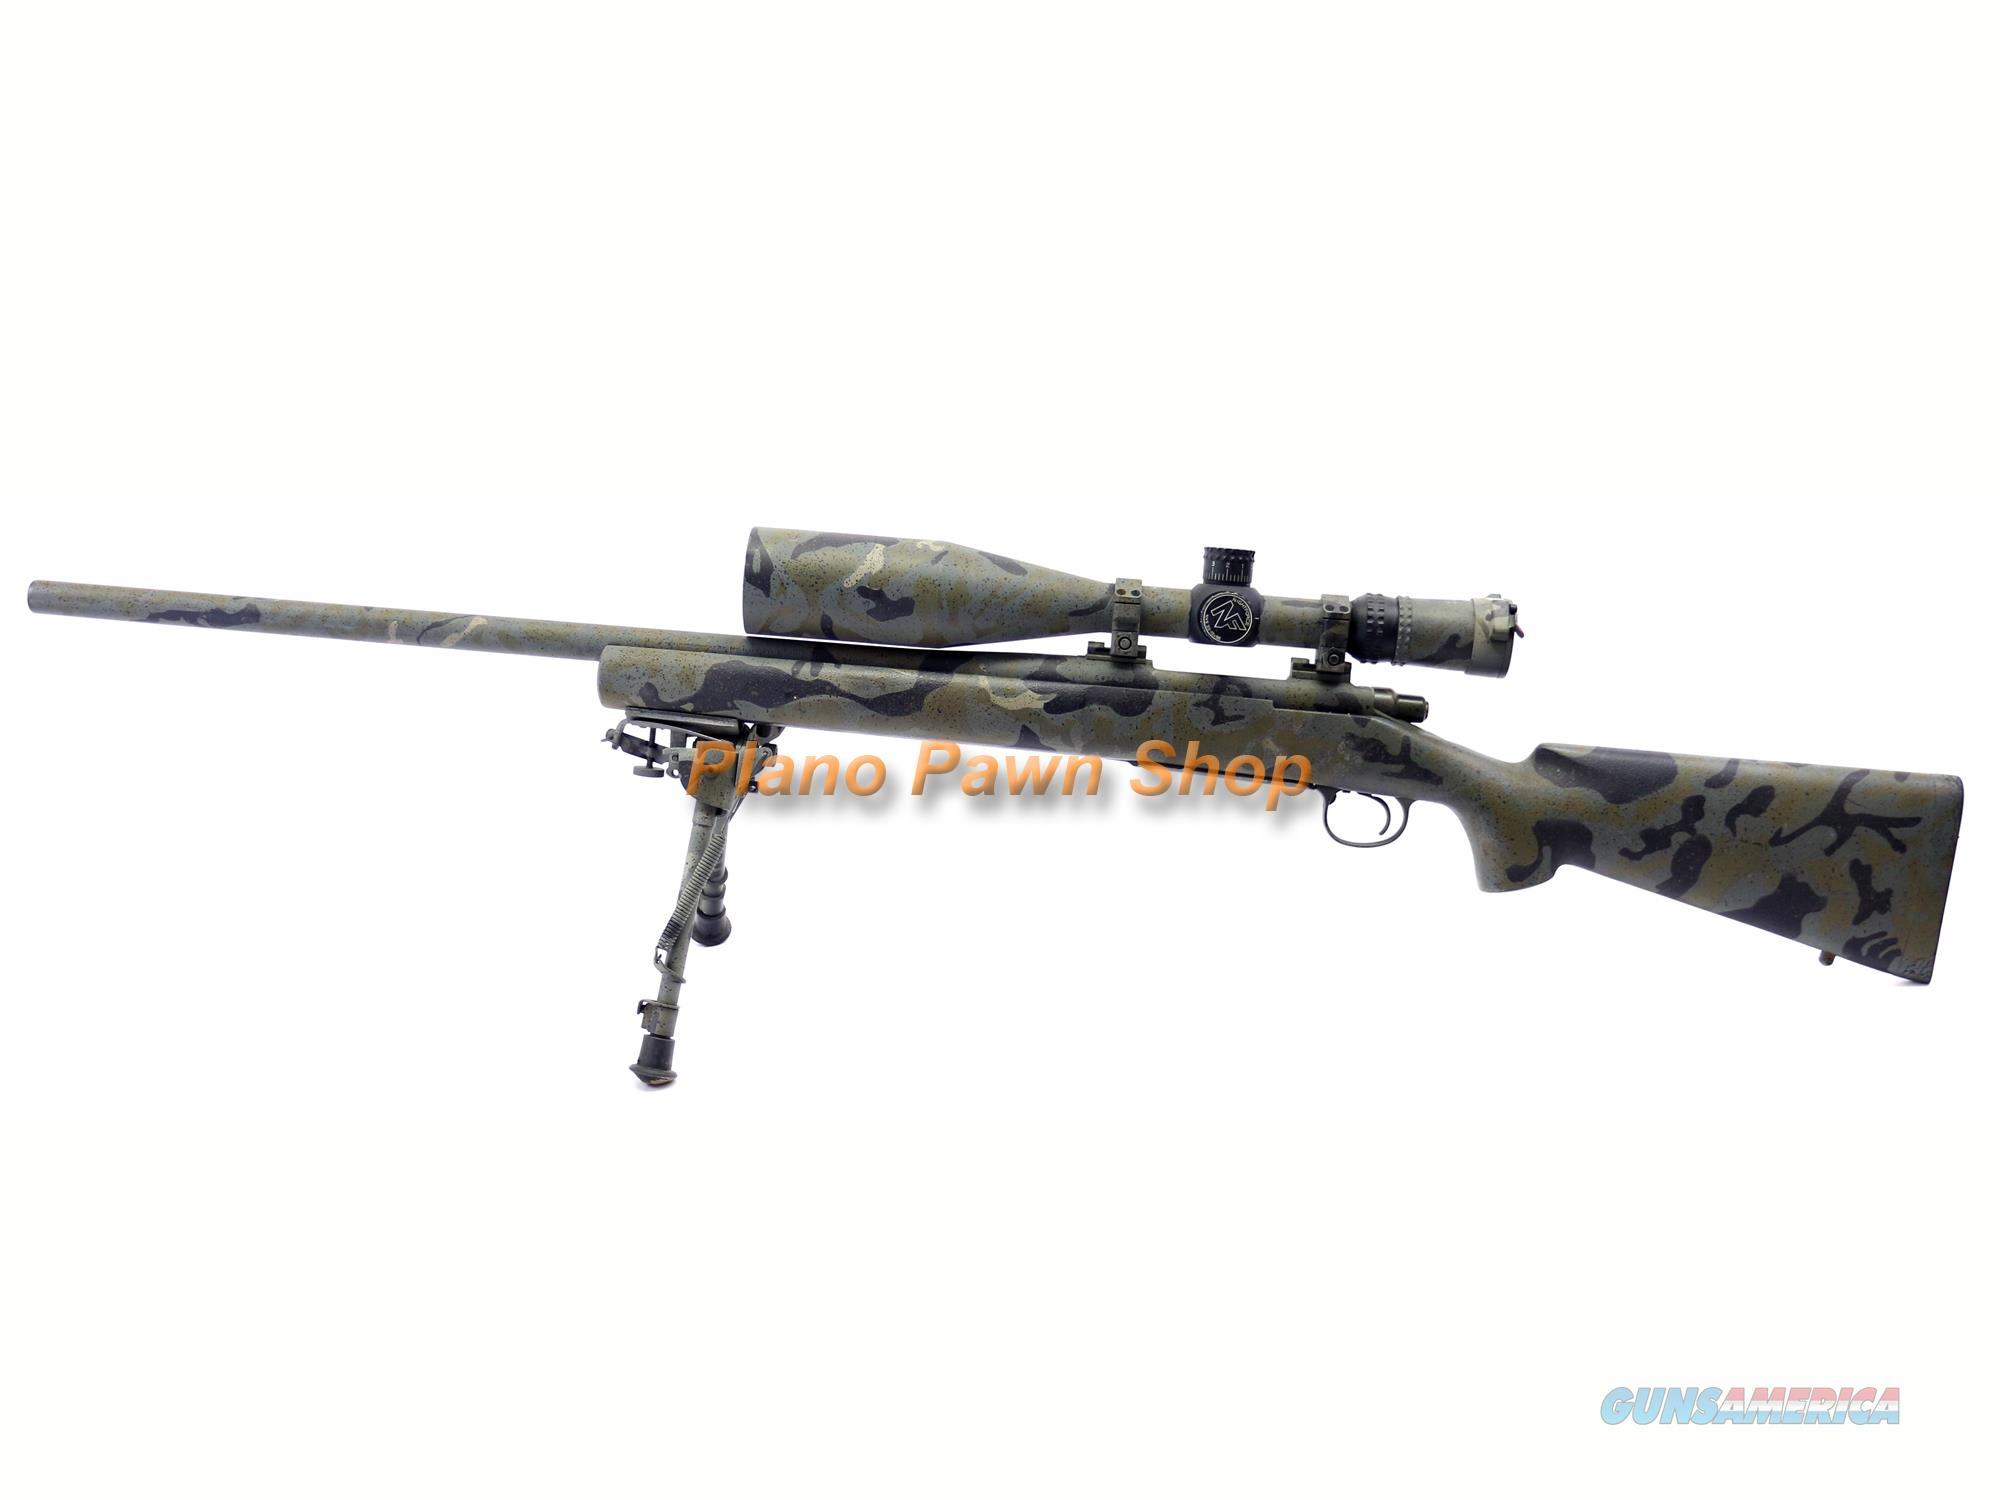 Remington Model 700BDL .300REM Ultra Mag HS Precision Stock CAMO with Scope  Guns > Rifles > Remington Rifles - Modern > Model 700 > Tactical